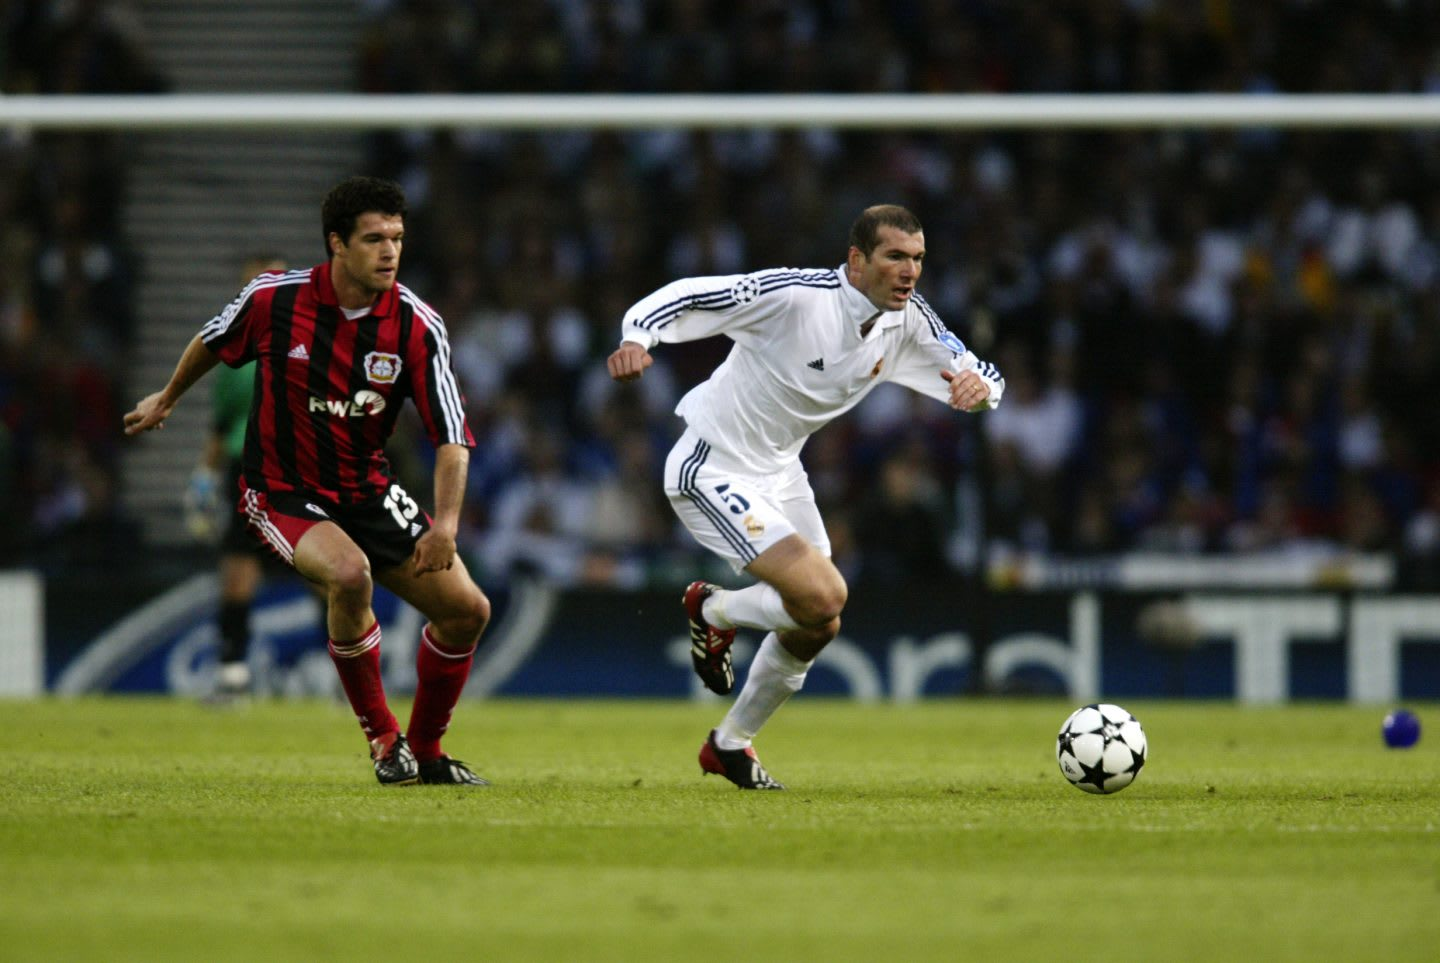 Real Madrid's Zinedine Zidane is playing the foorball while Leverkusen's Michael Ballack is trying to stop him in the Champions League Final 2002, both are wearing Predator boots. adidas; Predator; Champions League; fight; win; Icon; Legend; Final; Zidane